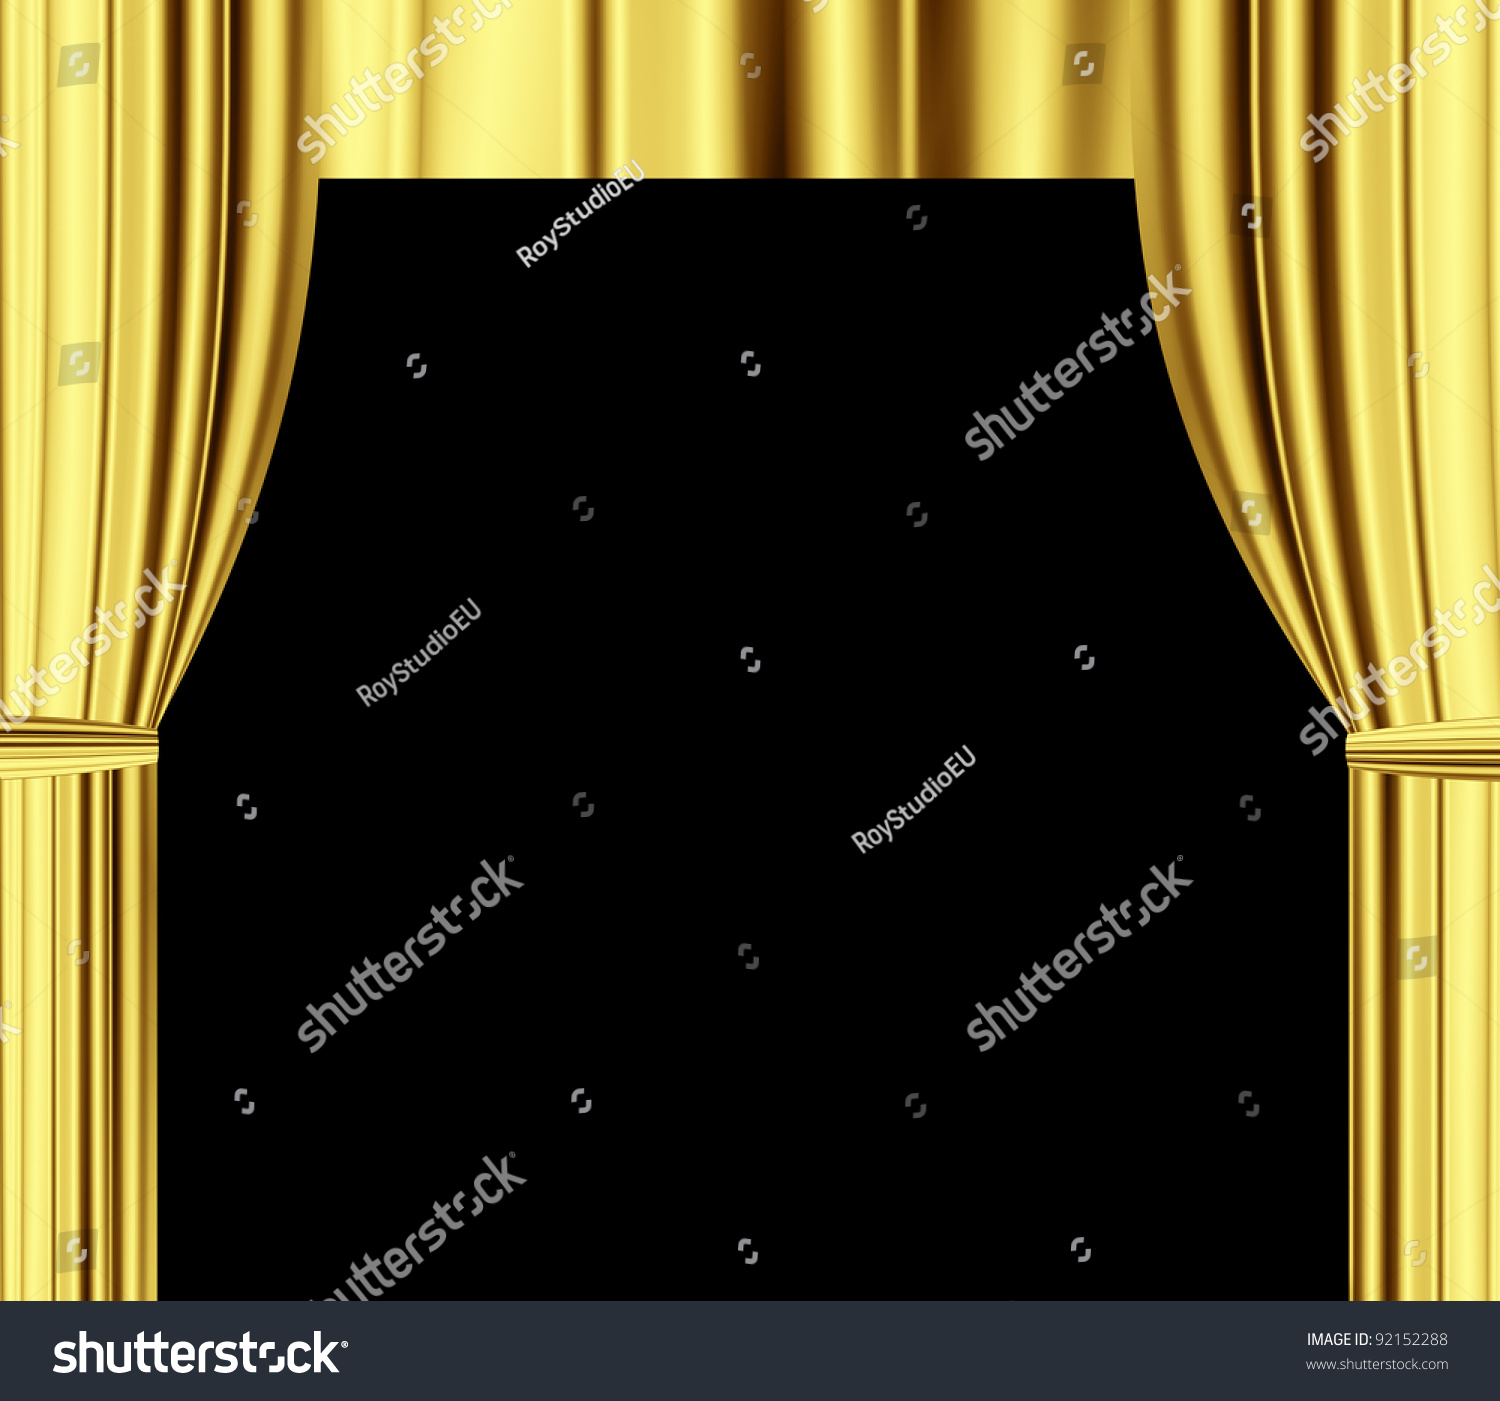 Black theatre curtain - Gold Theater Draperies Curtain With Black Empty Space For Text